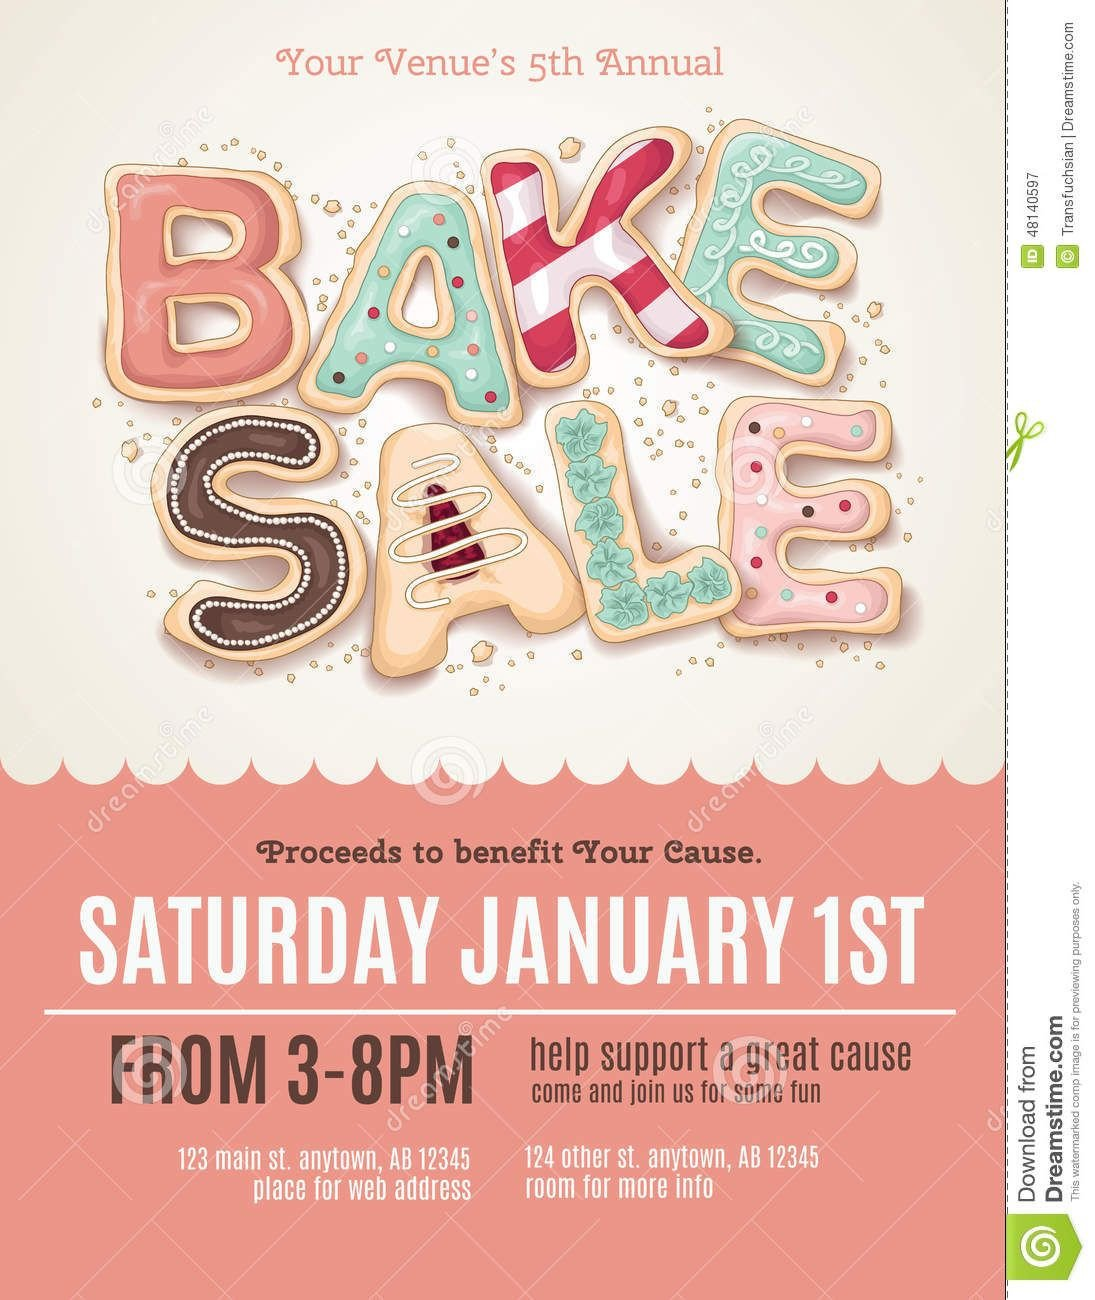 Bake Sale Flyer Template Fun Cookie Bake Sale Flyer Template Download From Over